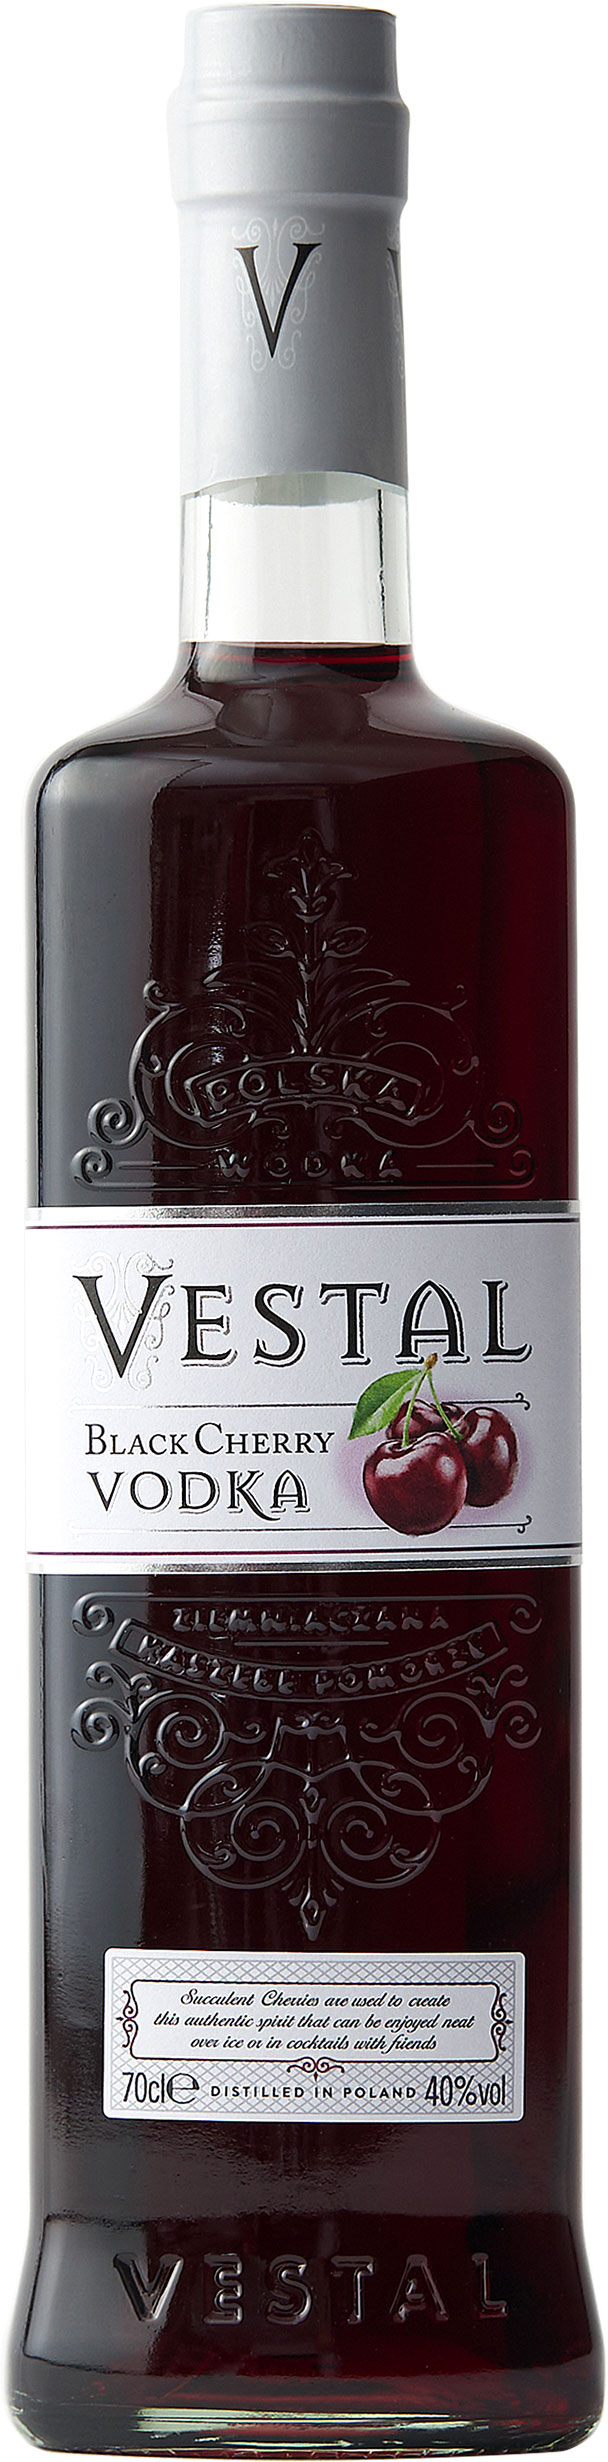 Vestal - Black Cherry Vodka 70cl Bottle